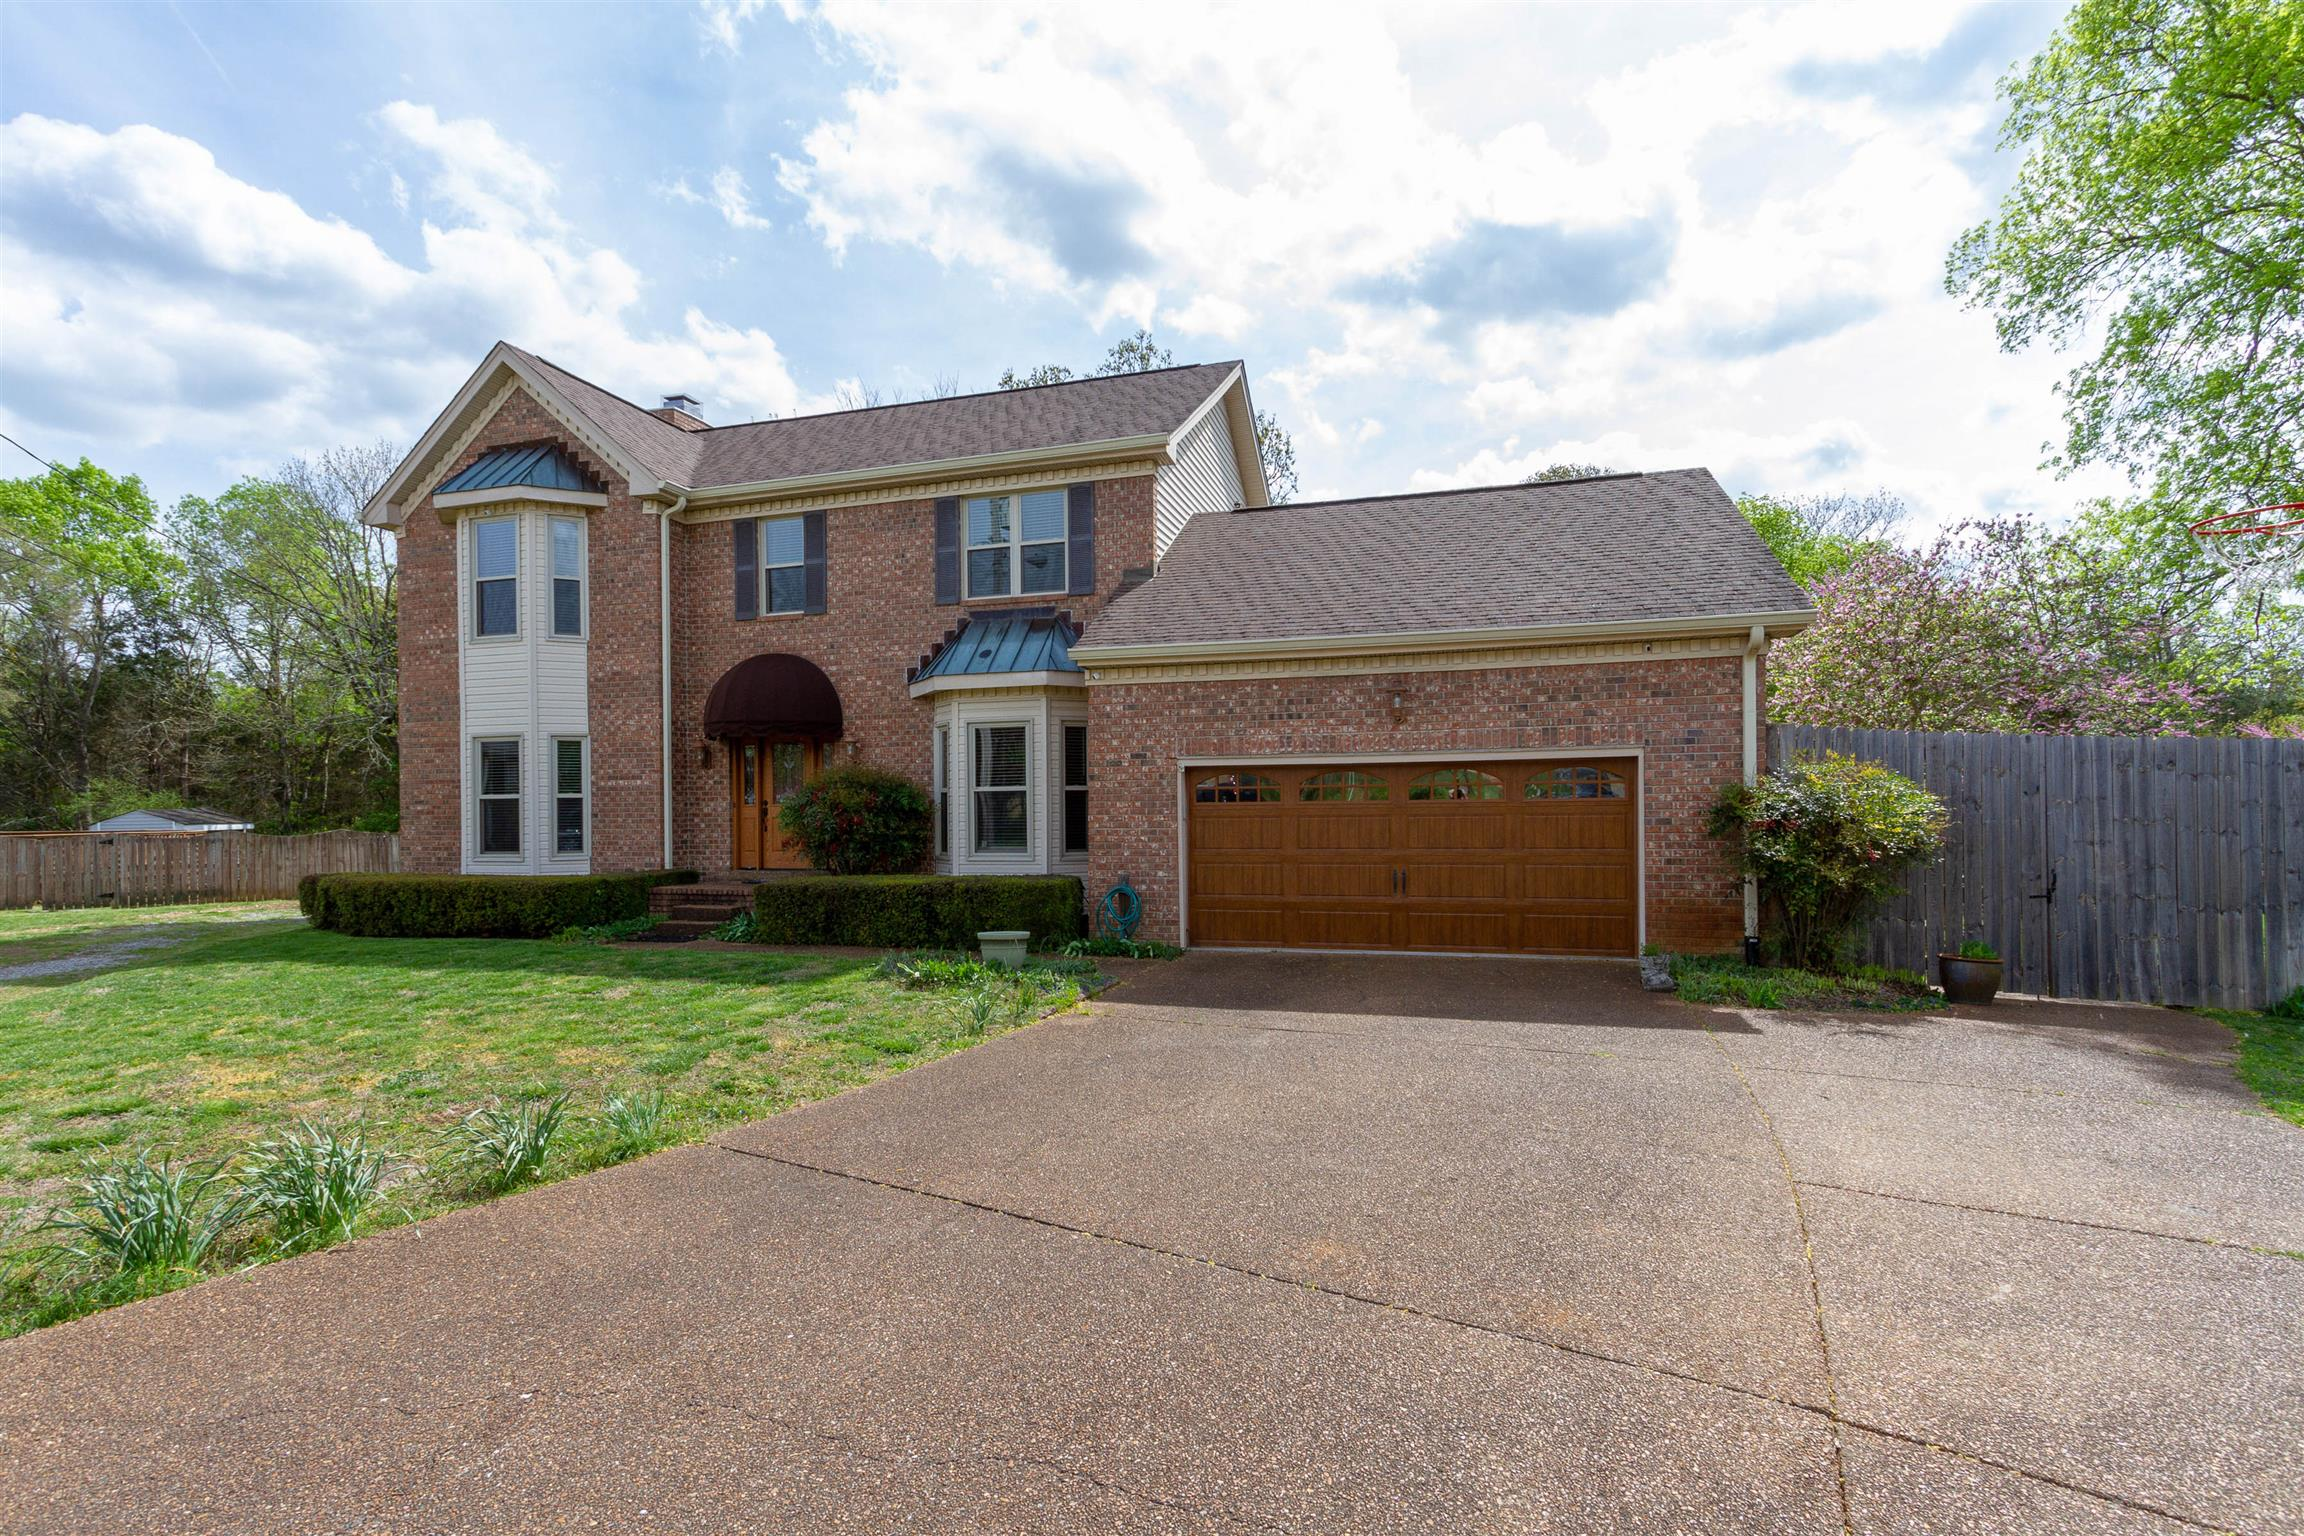 1104 Scenic Lake Ct, Nashville-Antioch, Tennessee